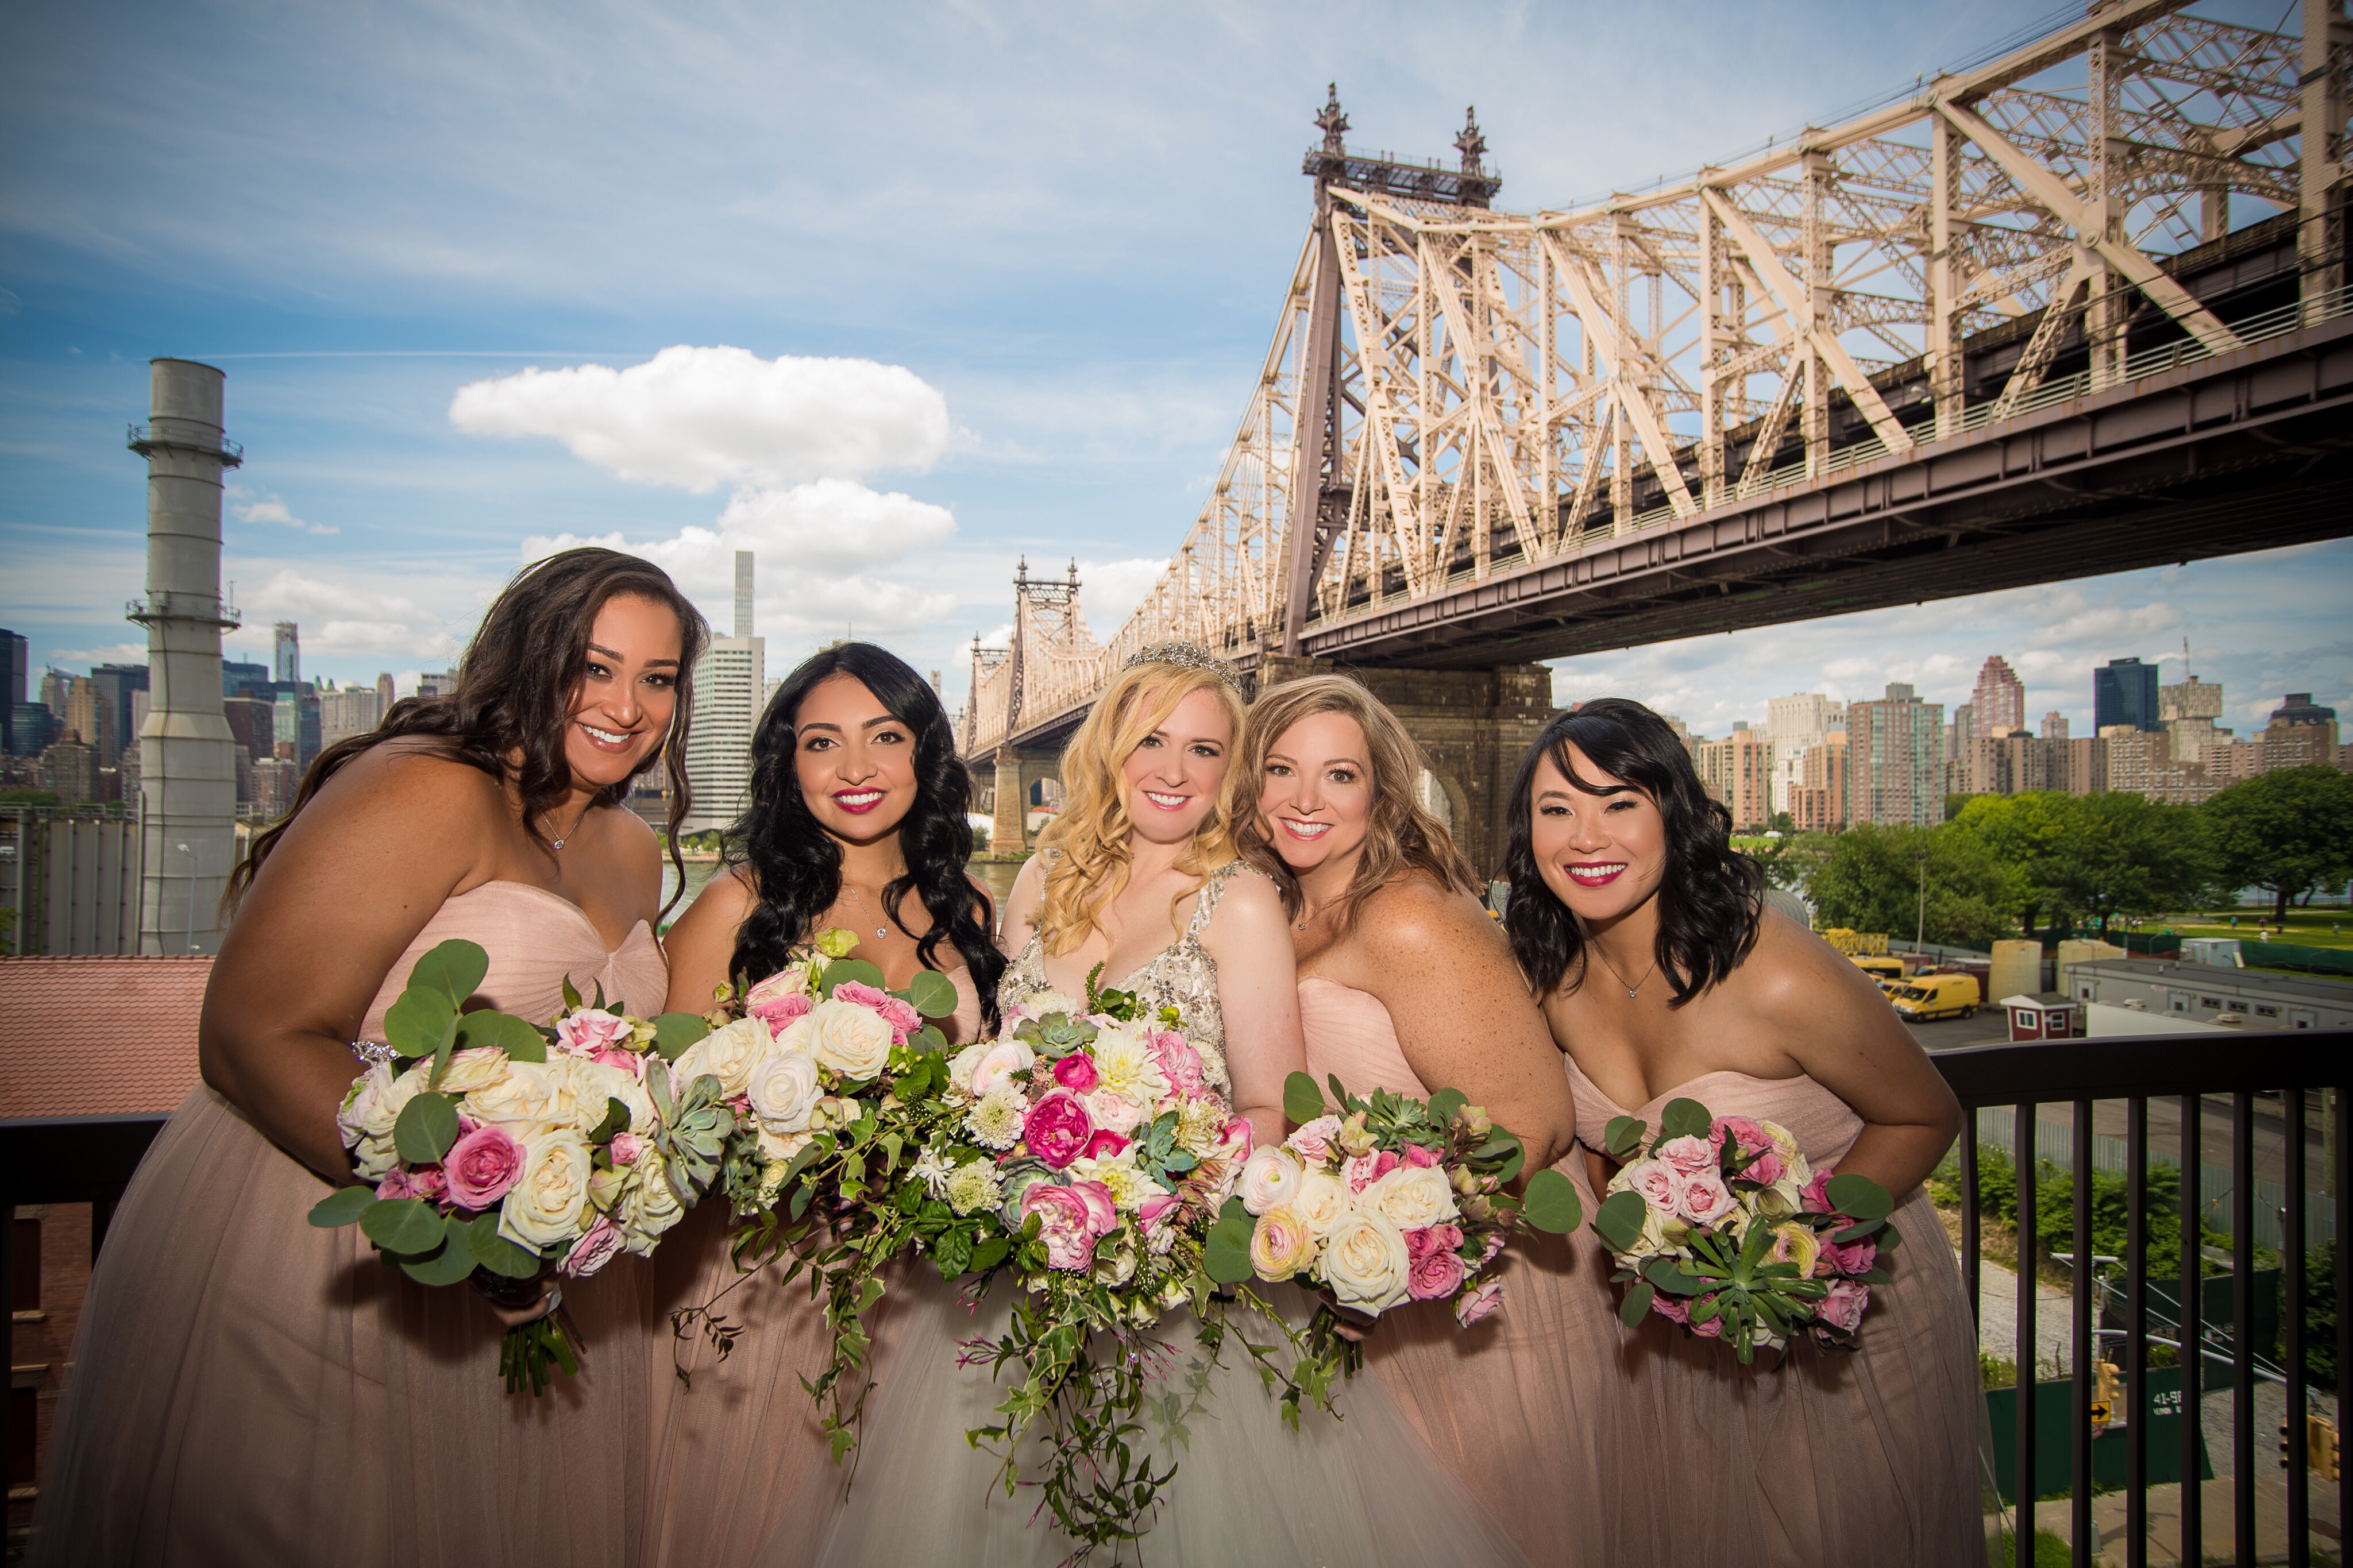 Bridal Party balcony Our Magical Wedding  Part One (Getting ready with your bridal party,  plus hotel room must haves!)